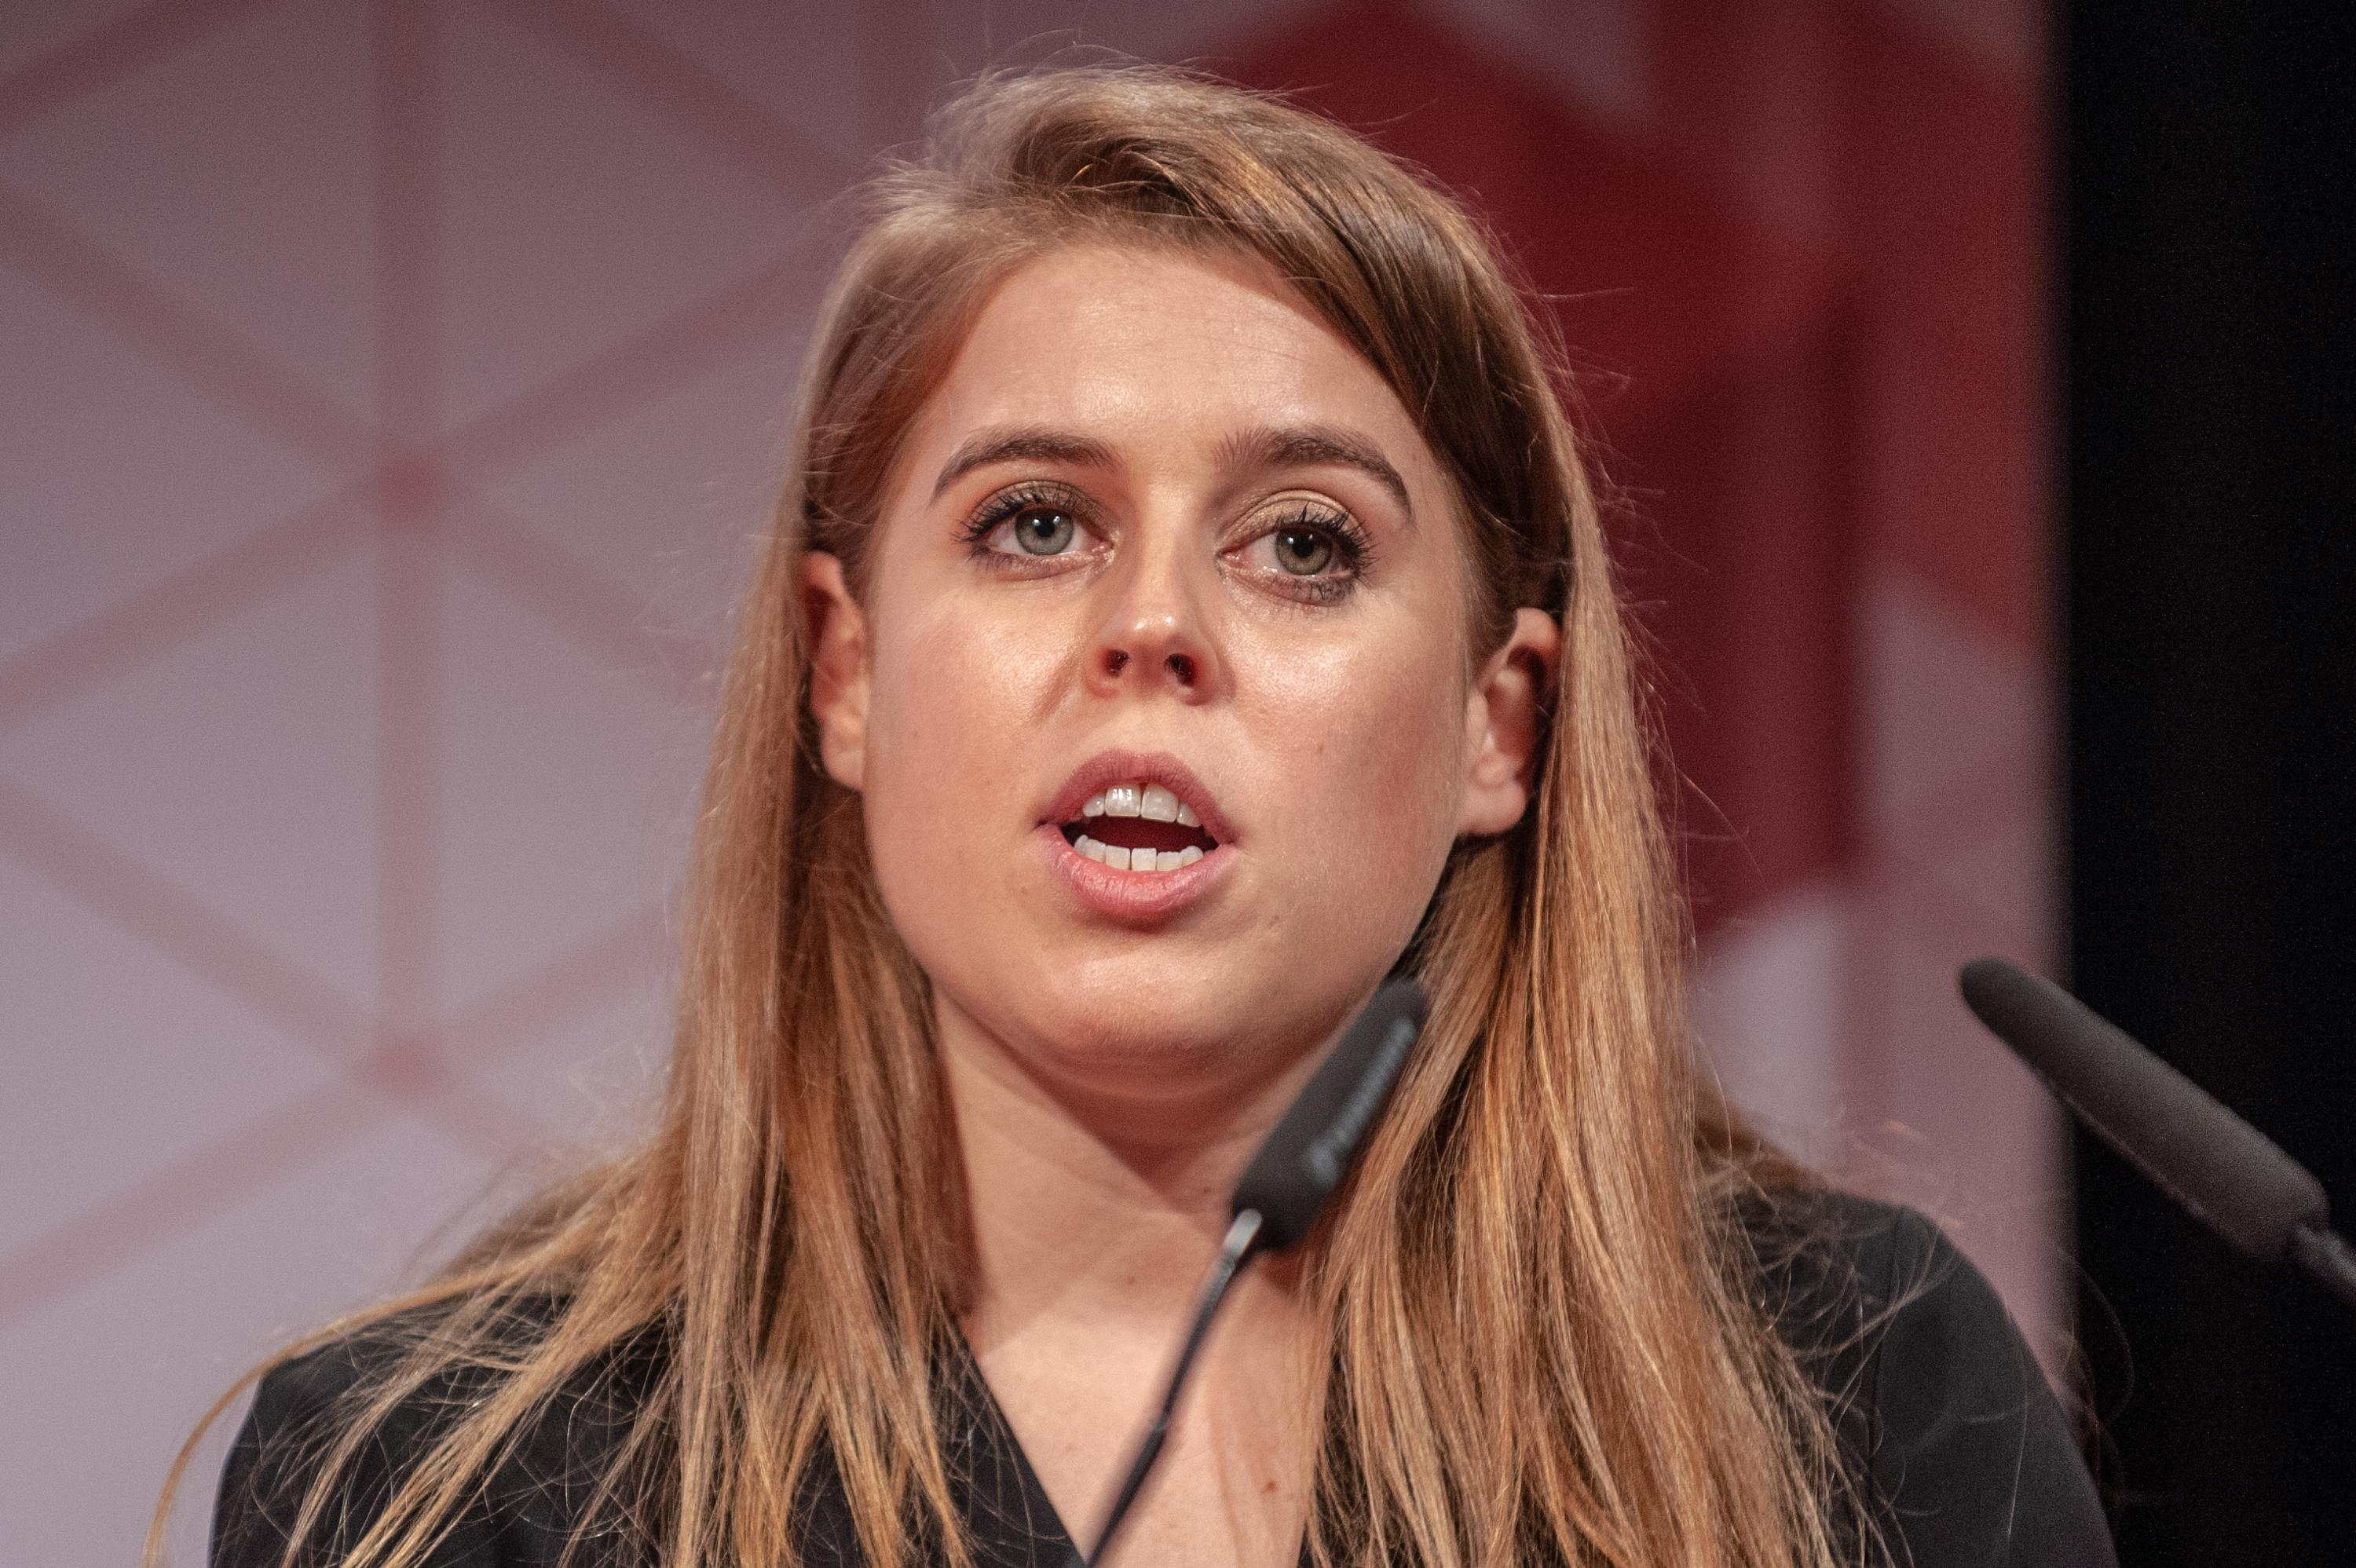 Princess Beatrice visits Pakistan as part of 'high-level delegation'